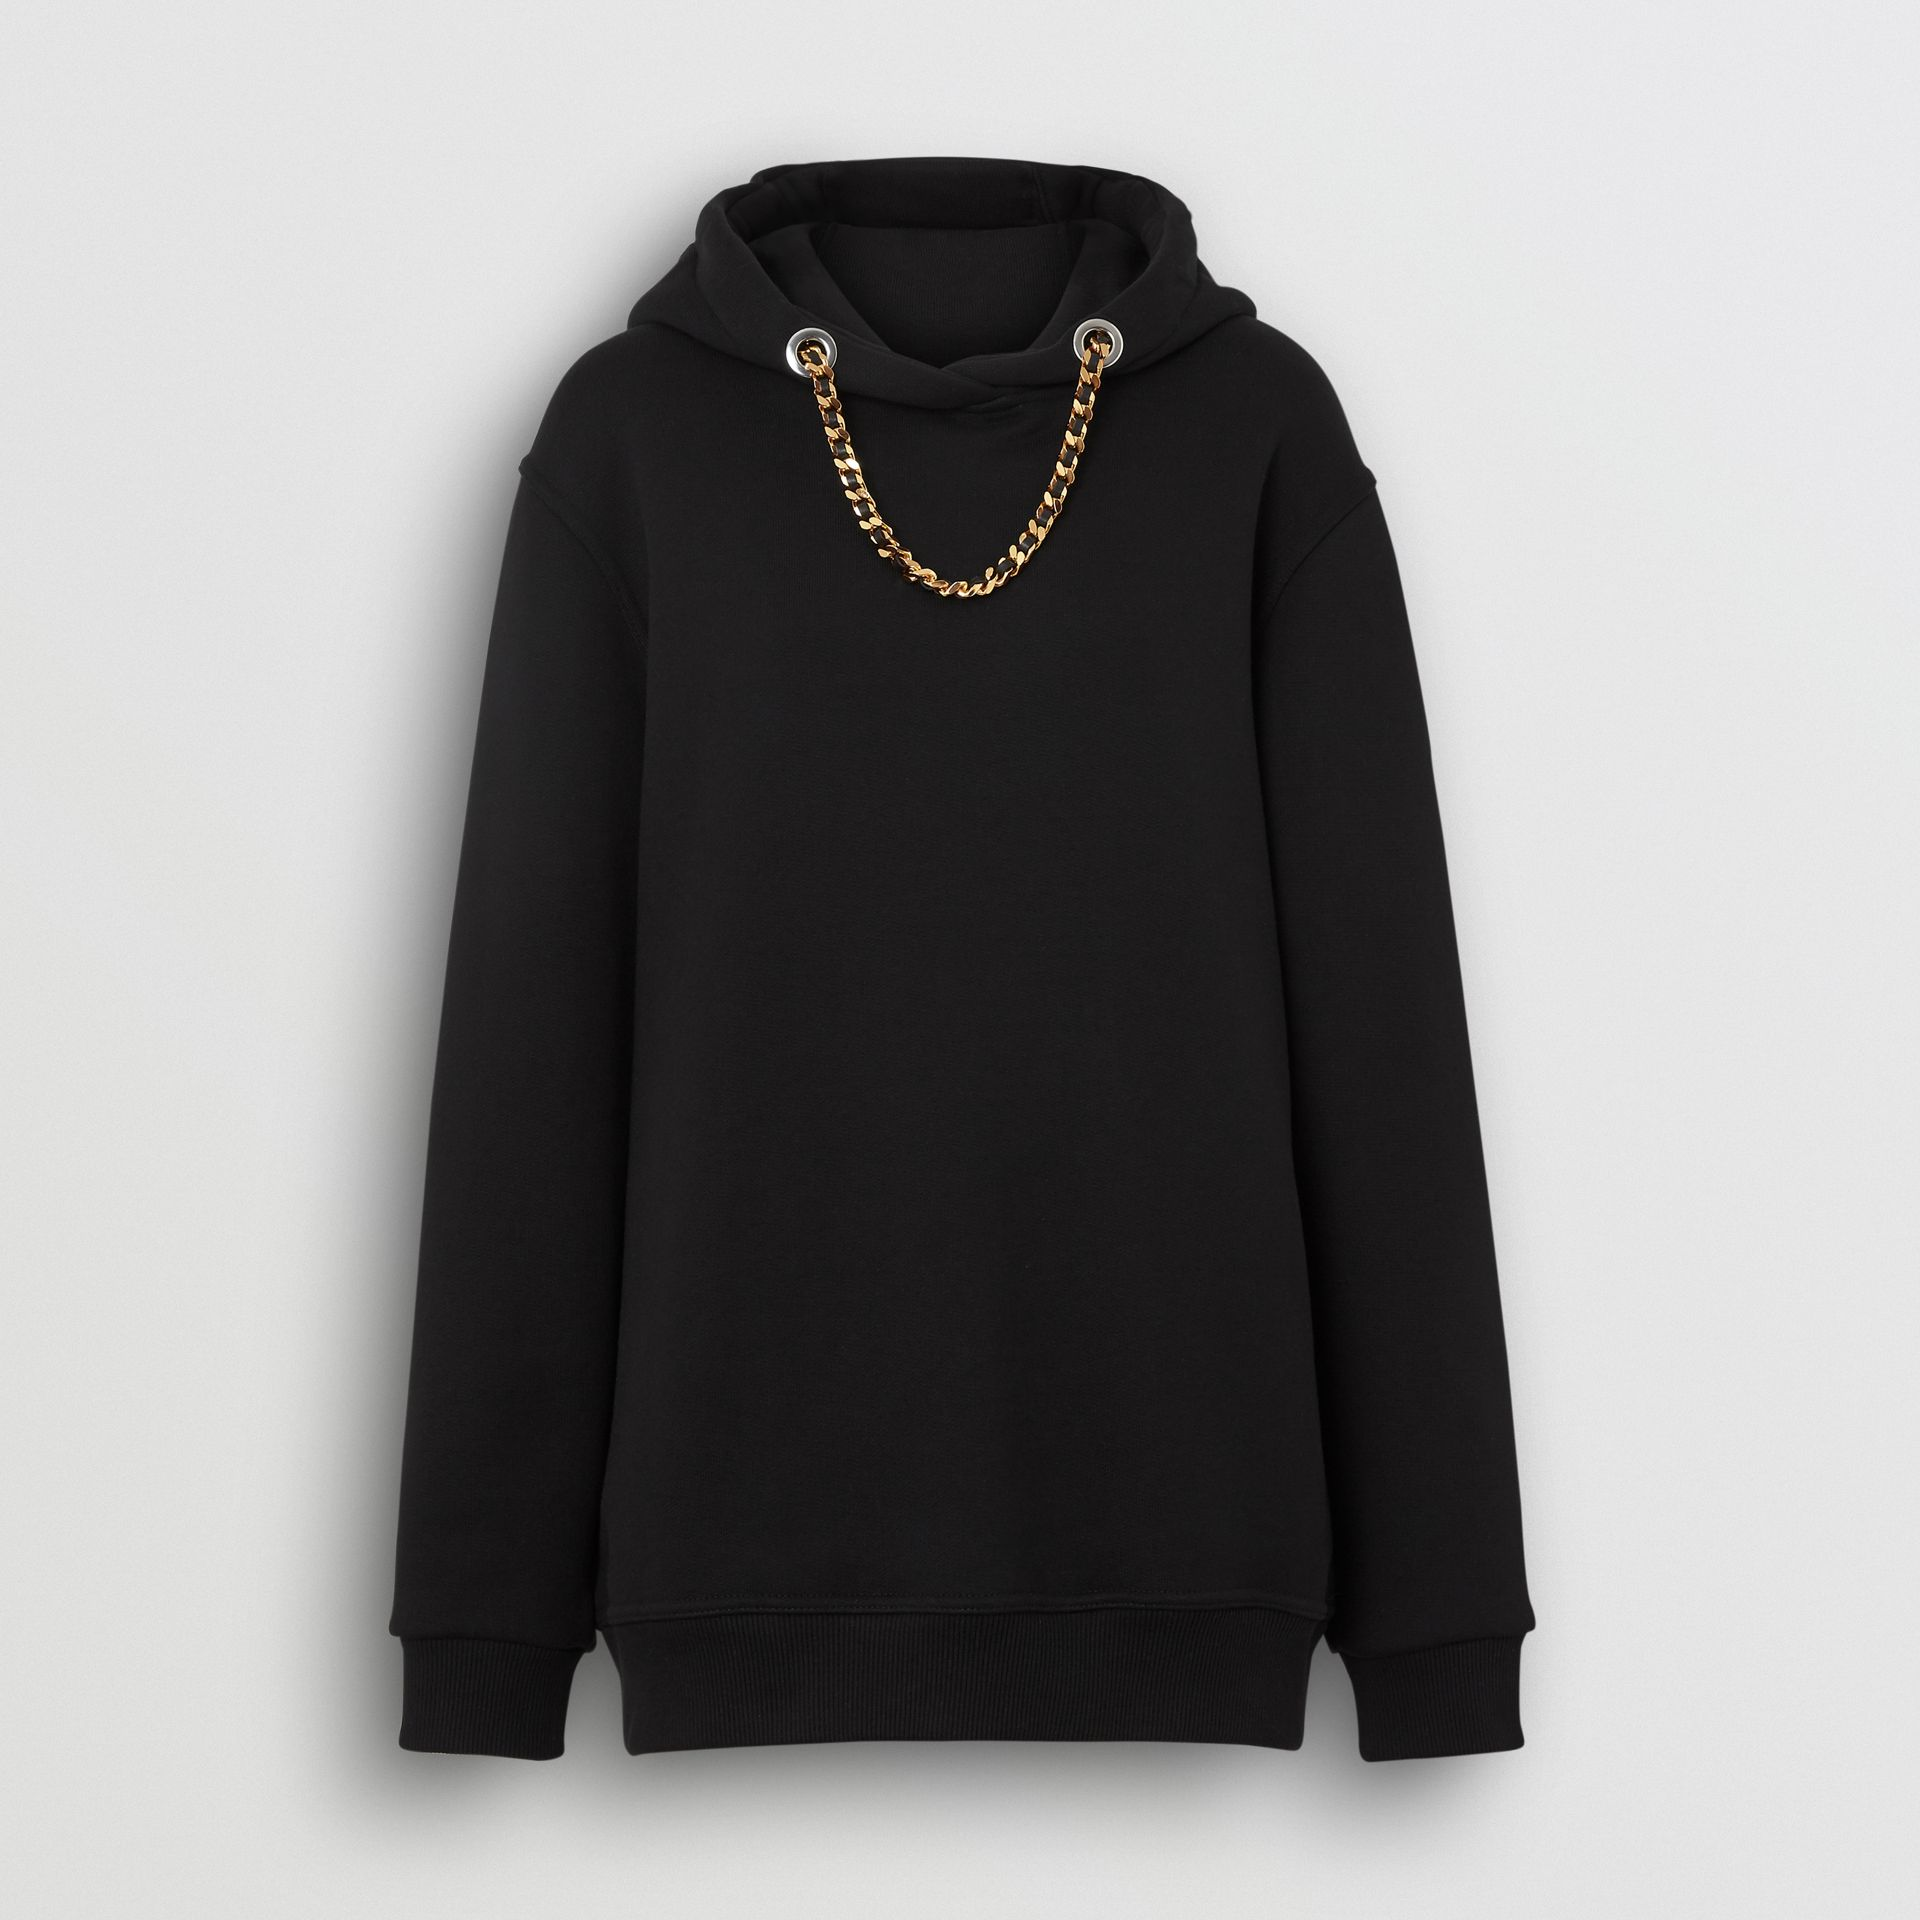 Chain Detail Hoodie in Black - Women | Burberry Singapore - gallery image 3